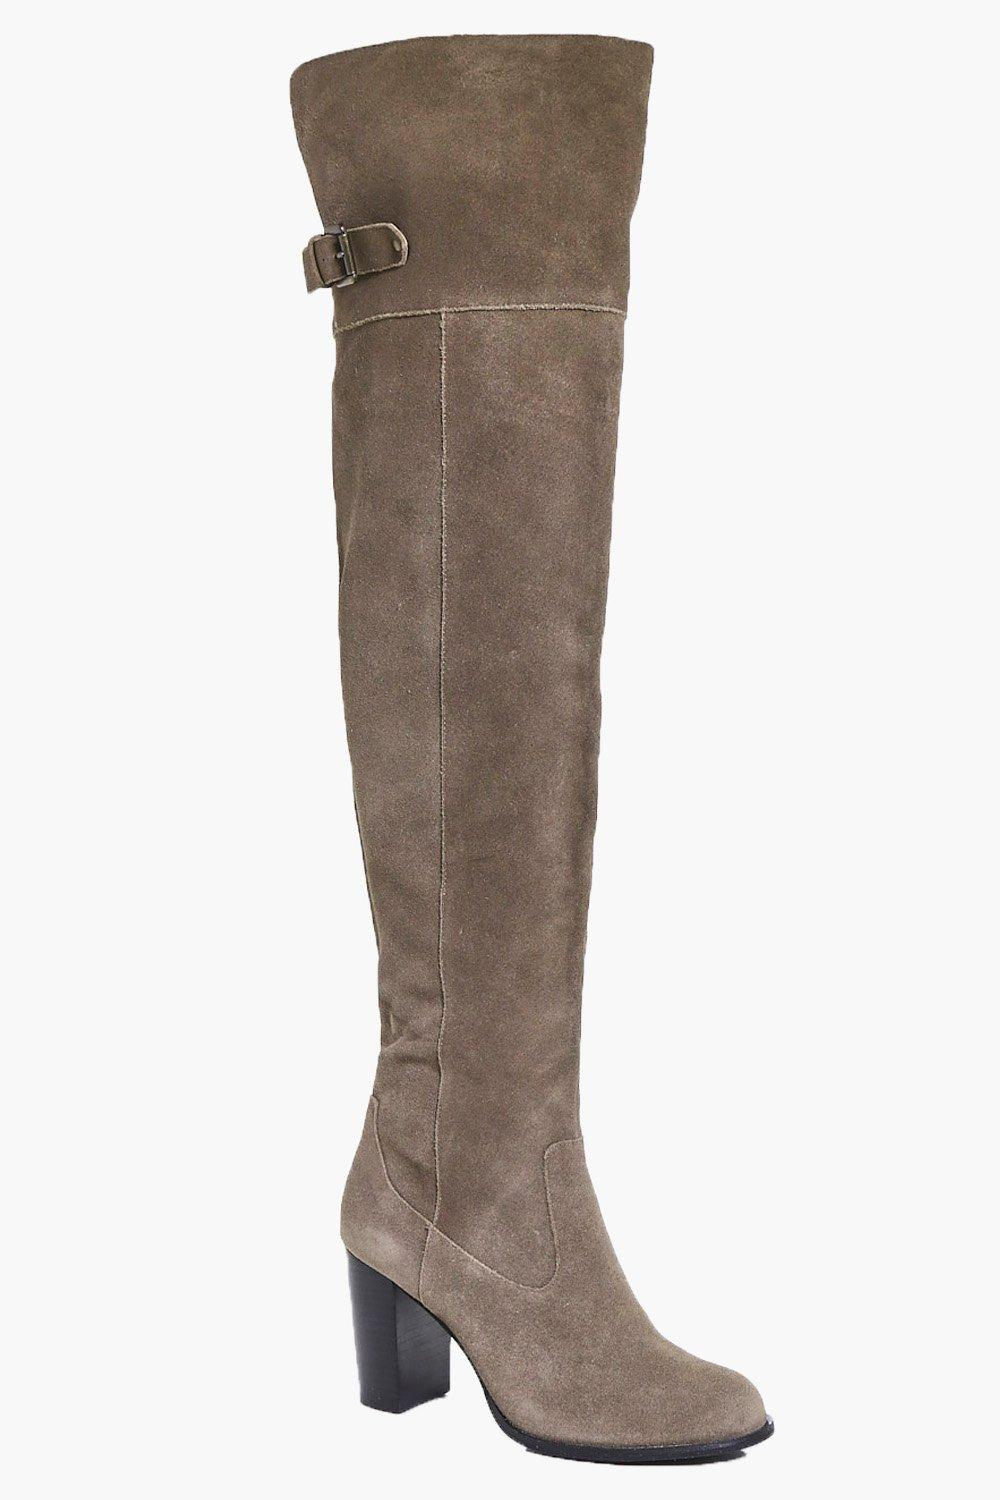 Eve Boutique Suede Over The Knee Boot